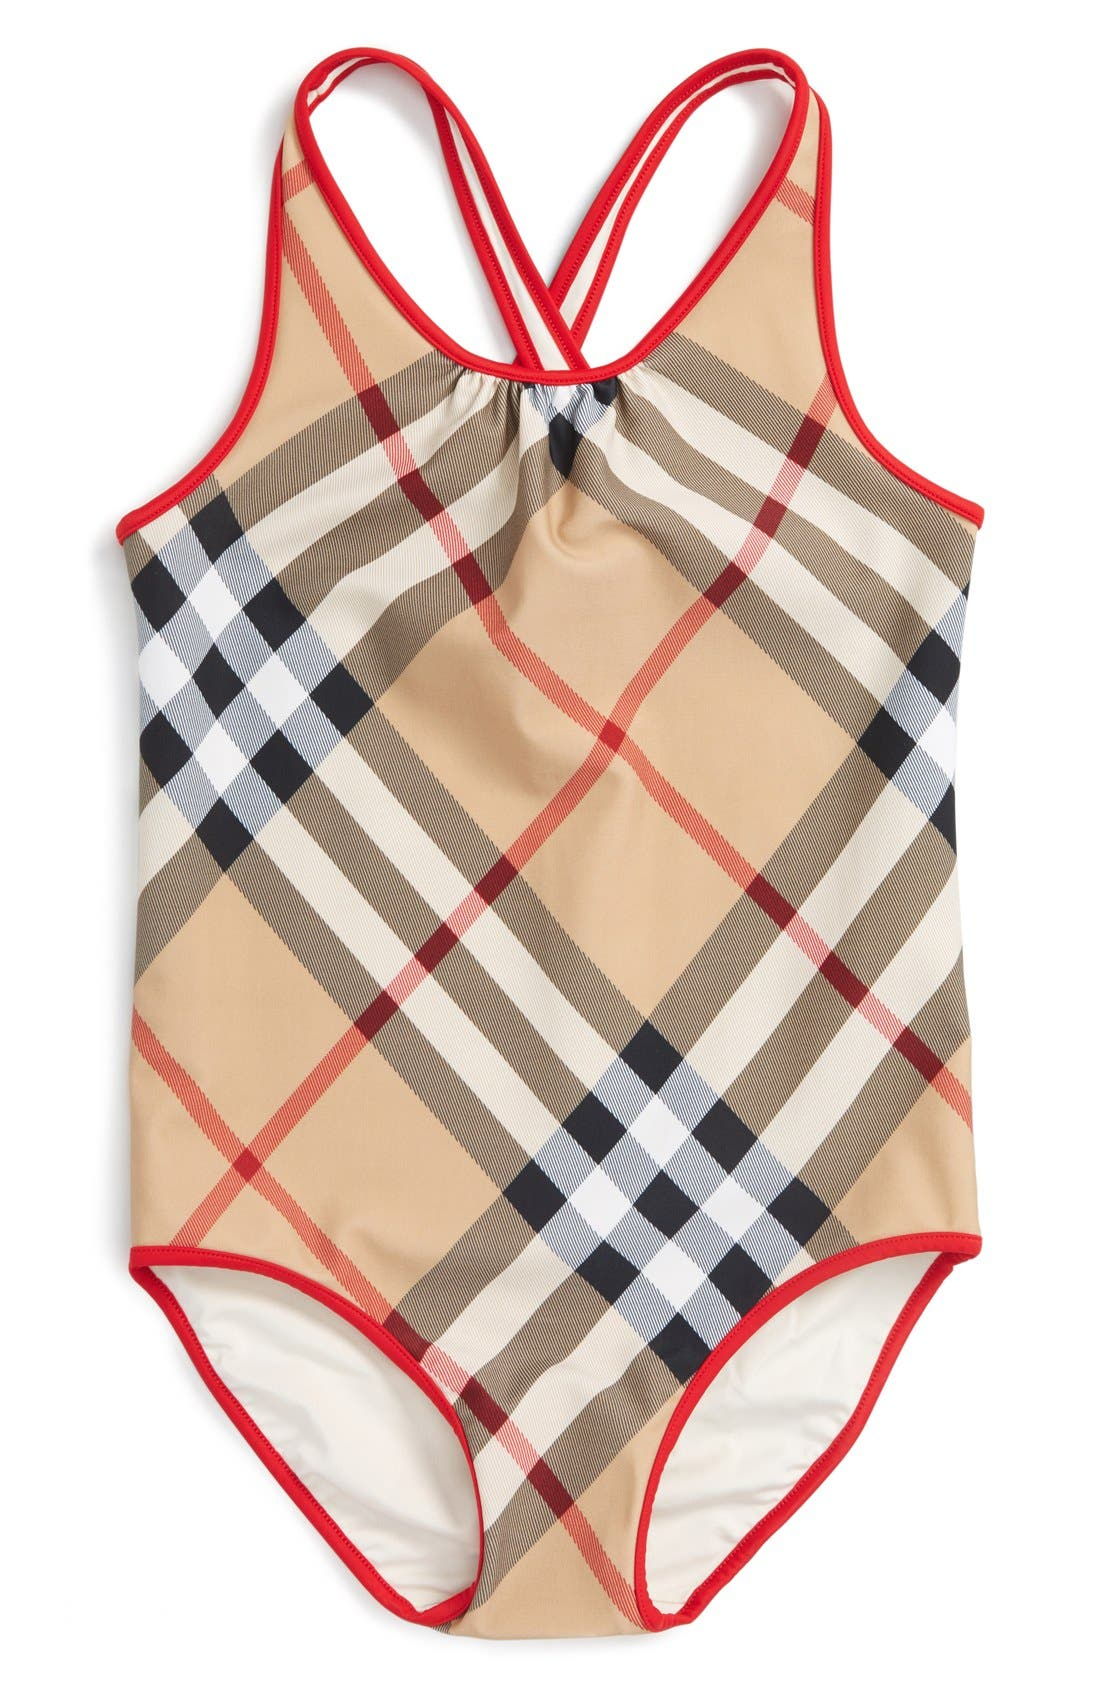 Alternate Image 1 Selected - Burberry 'Beadnell' Check Print One-Piece Swimsuit (Little Girls & Big Girls)